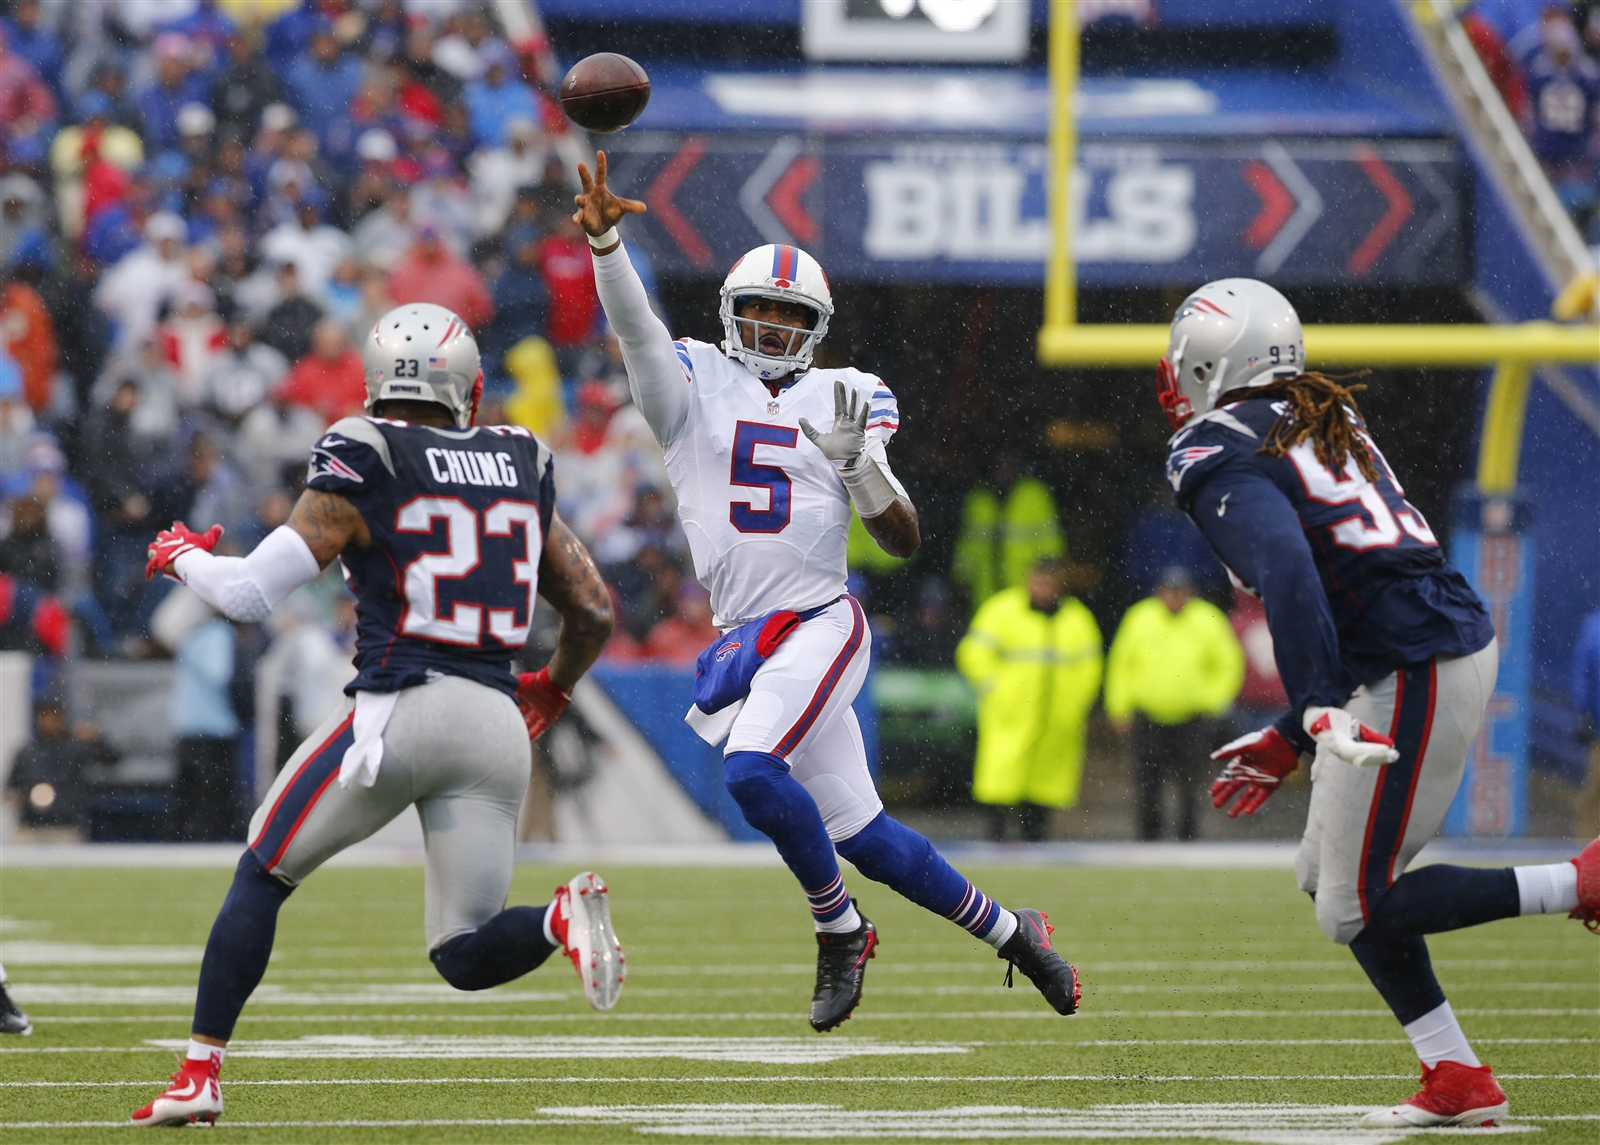 BILLS PASSING GAME: Incomplete. Seriously, whatu2019s the point of trying to grade quarterback Tyrod Taylor when the team is practically bringing fans down from the stands to play receiver? He finished 19 of 38 for 183 yards, with no touchdowns or interceptions. He wasnu2019t the reason the Bills lost, but doesnu2019t inspire much confidence that he will soon be the reason they win, either. General Manager Doug Whaley should be on the horn before Tuesdayu2019s trade deadline trying to get this team a wide receiver. Dropped passes were an issue, but coach Rex Ryan sounds awfully defensive about his quarterback when he says Taylor needs better protection after a game in which he was sacked just twice.